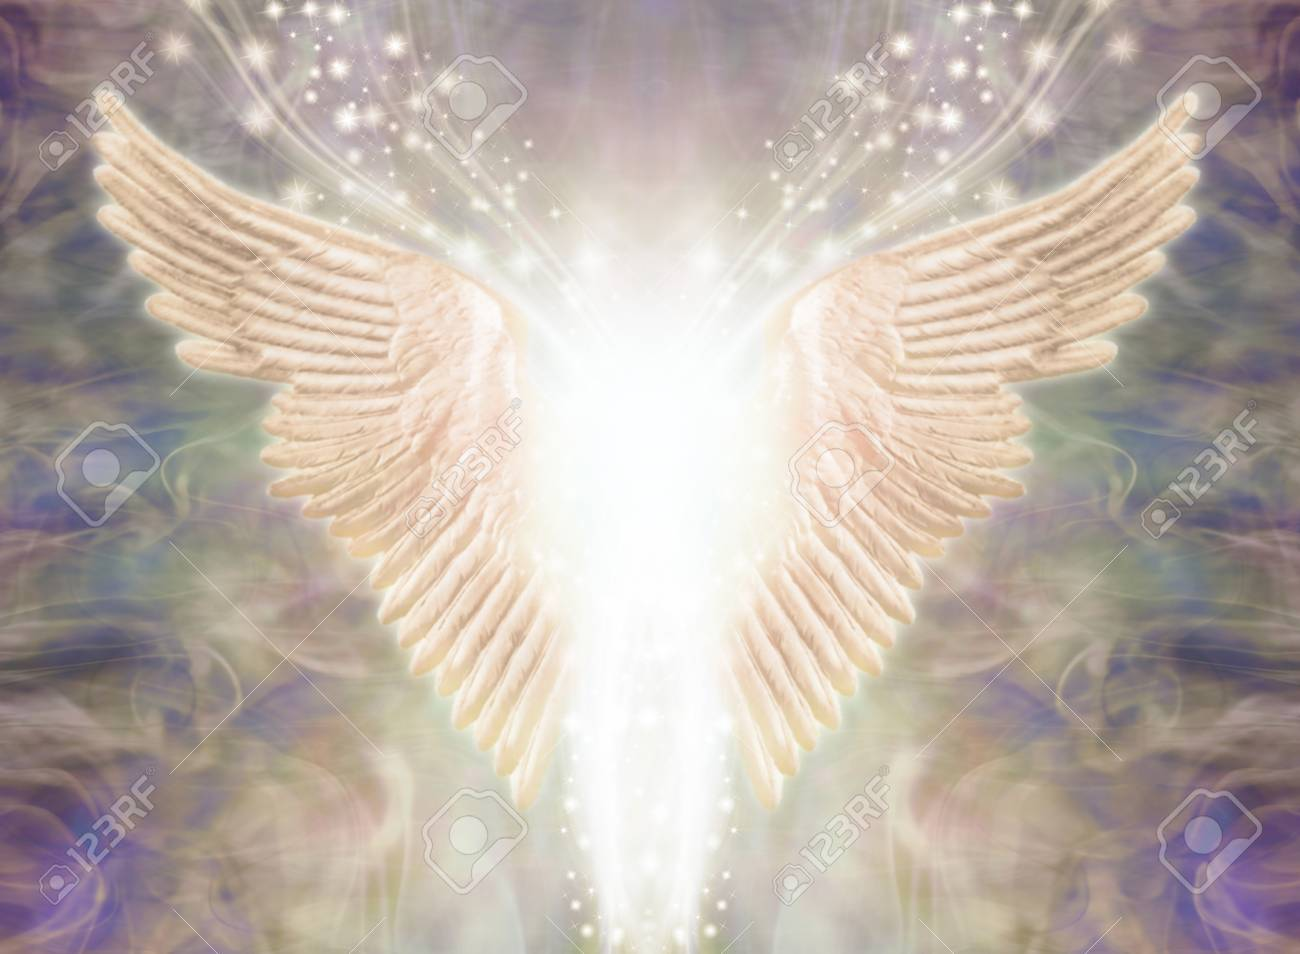 Angelic Light Being - Pair Of Angel Wings With Bright White Light.. Stock  Photo, Picture And Royalty Free Image. Image 118698956.